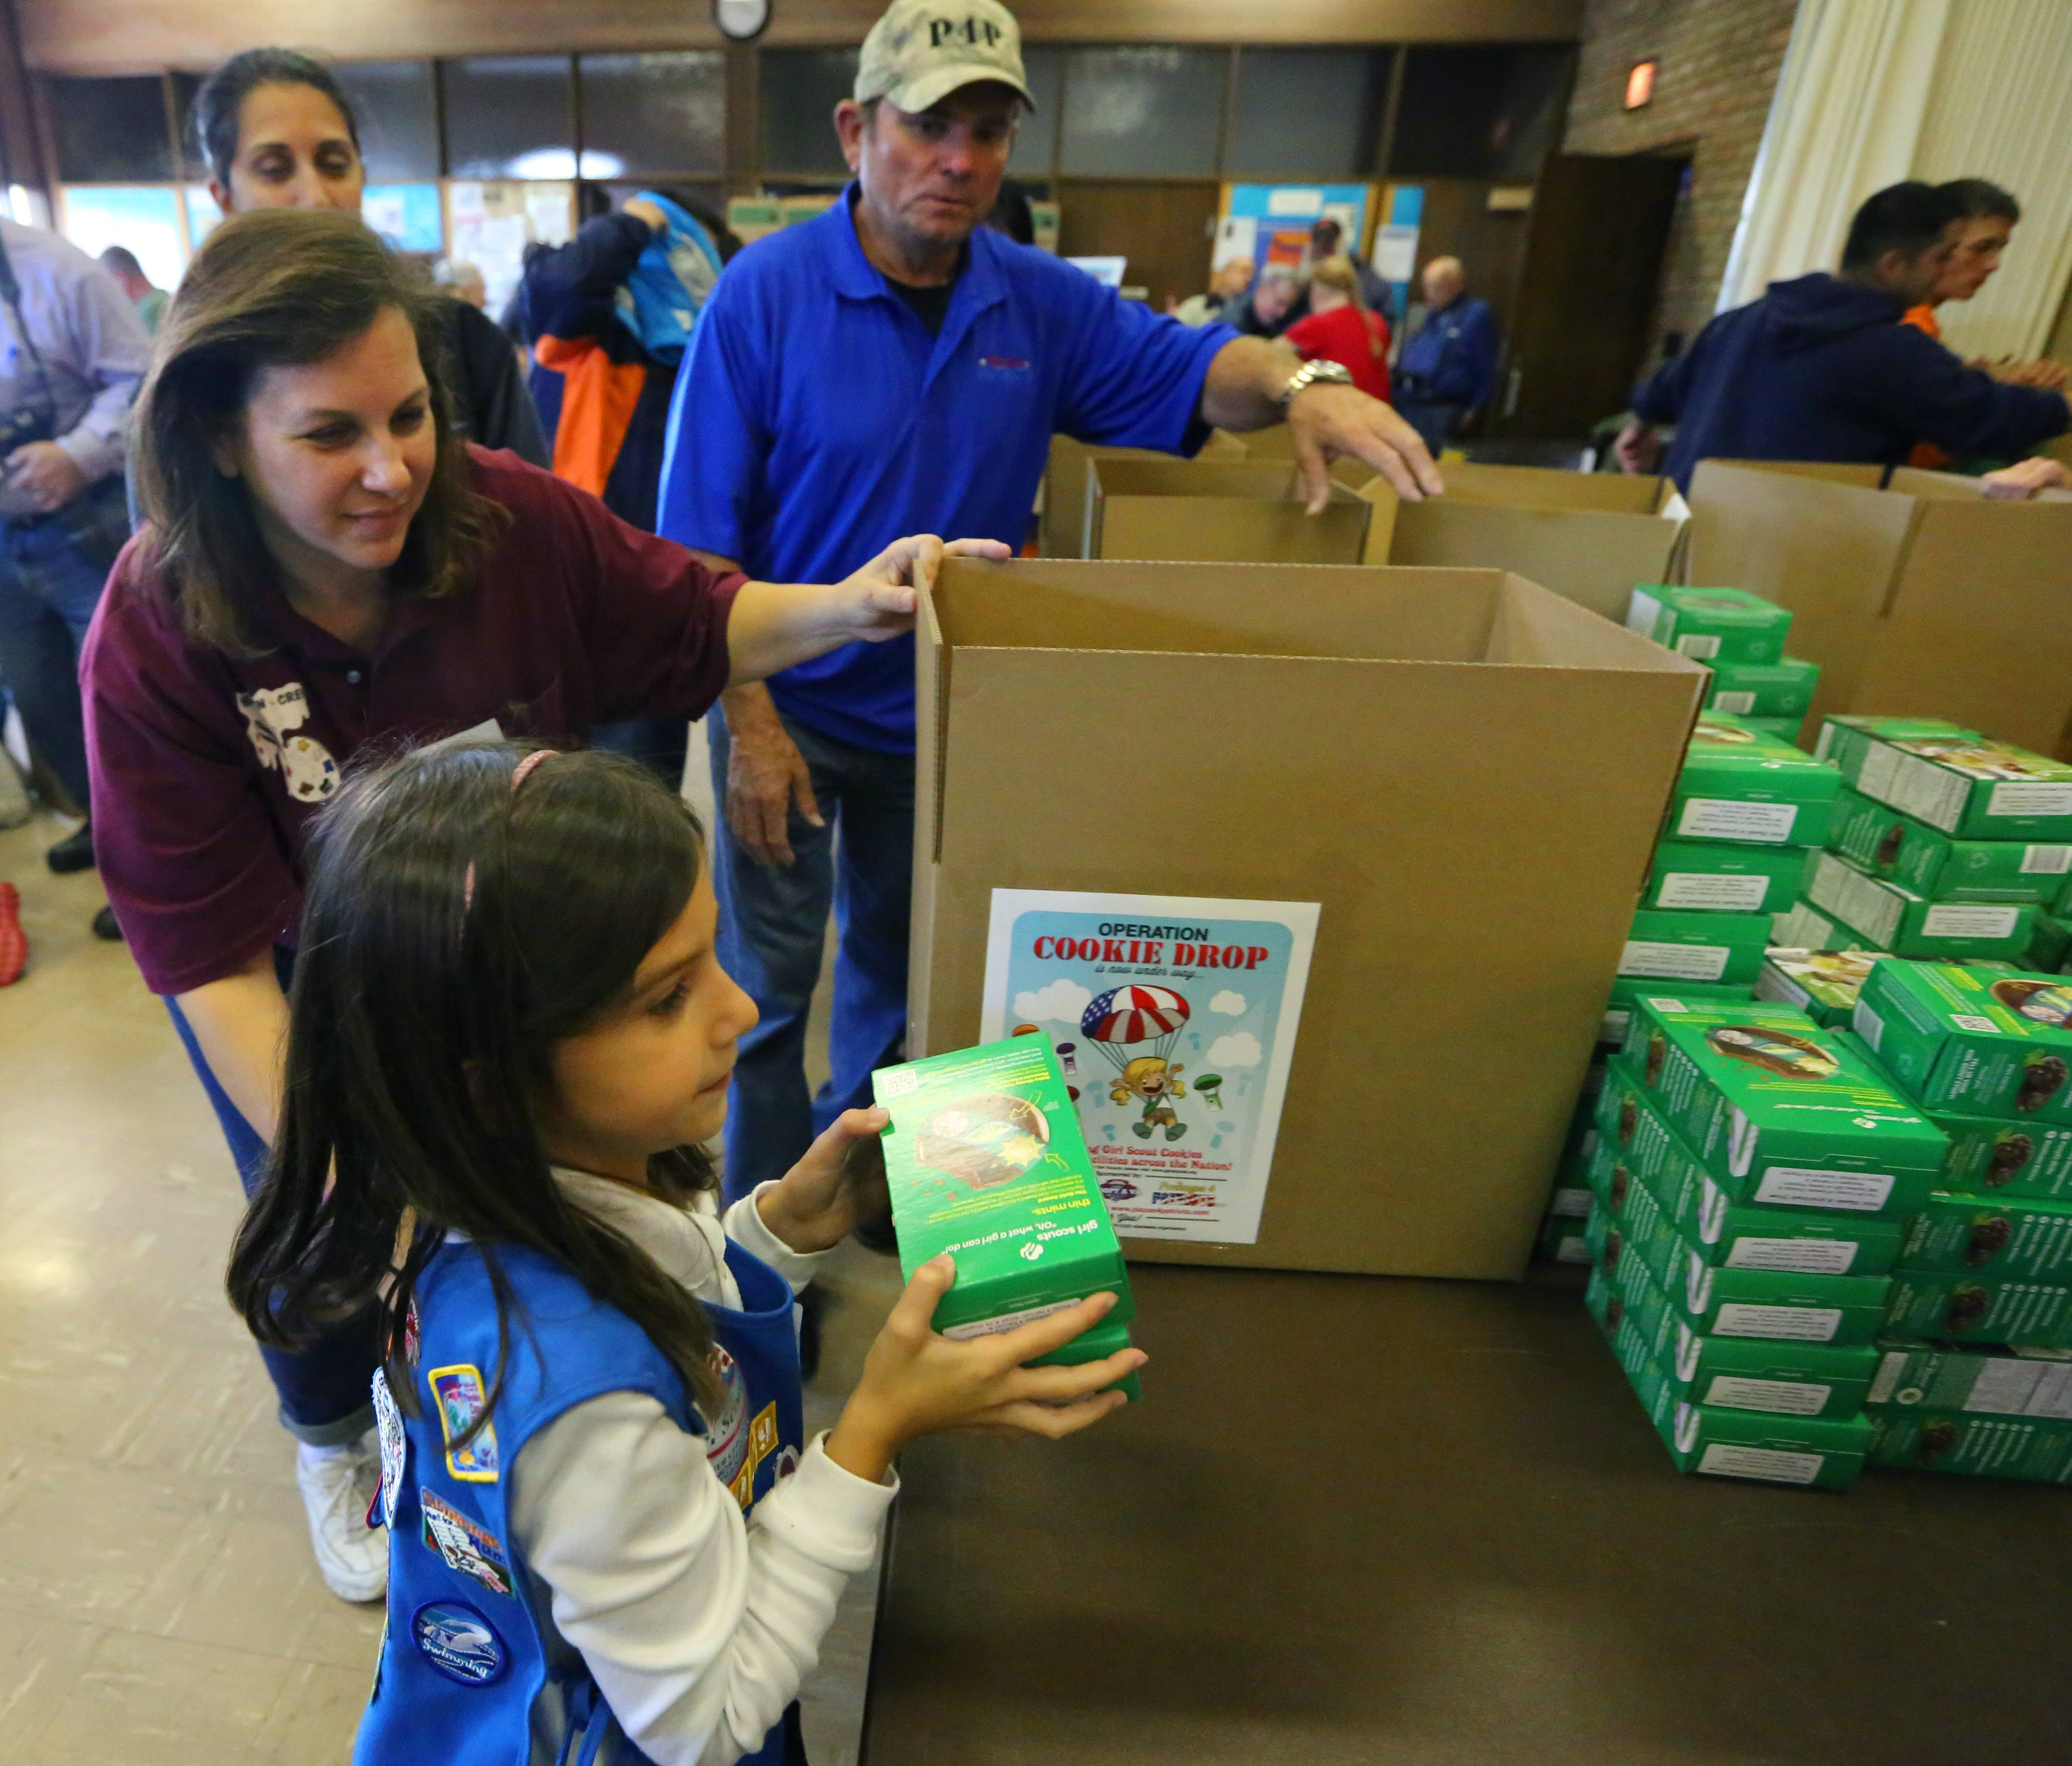 Girl Scout leader Frances Lehning and Pizza 4 Patriots founder Mark Evans watch as Immacolata Papucci, 7, of Elk Grove Village, packs one of 13,000 boxes of cookies on their way to veterans as part of Operation Cookie Drop.